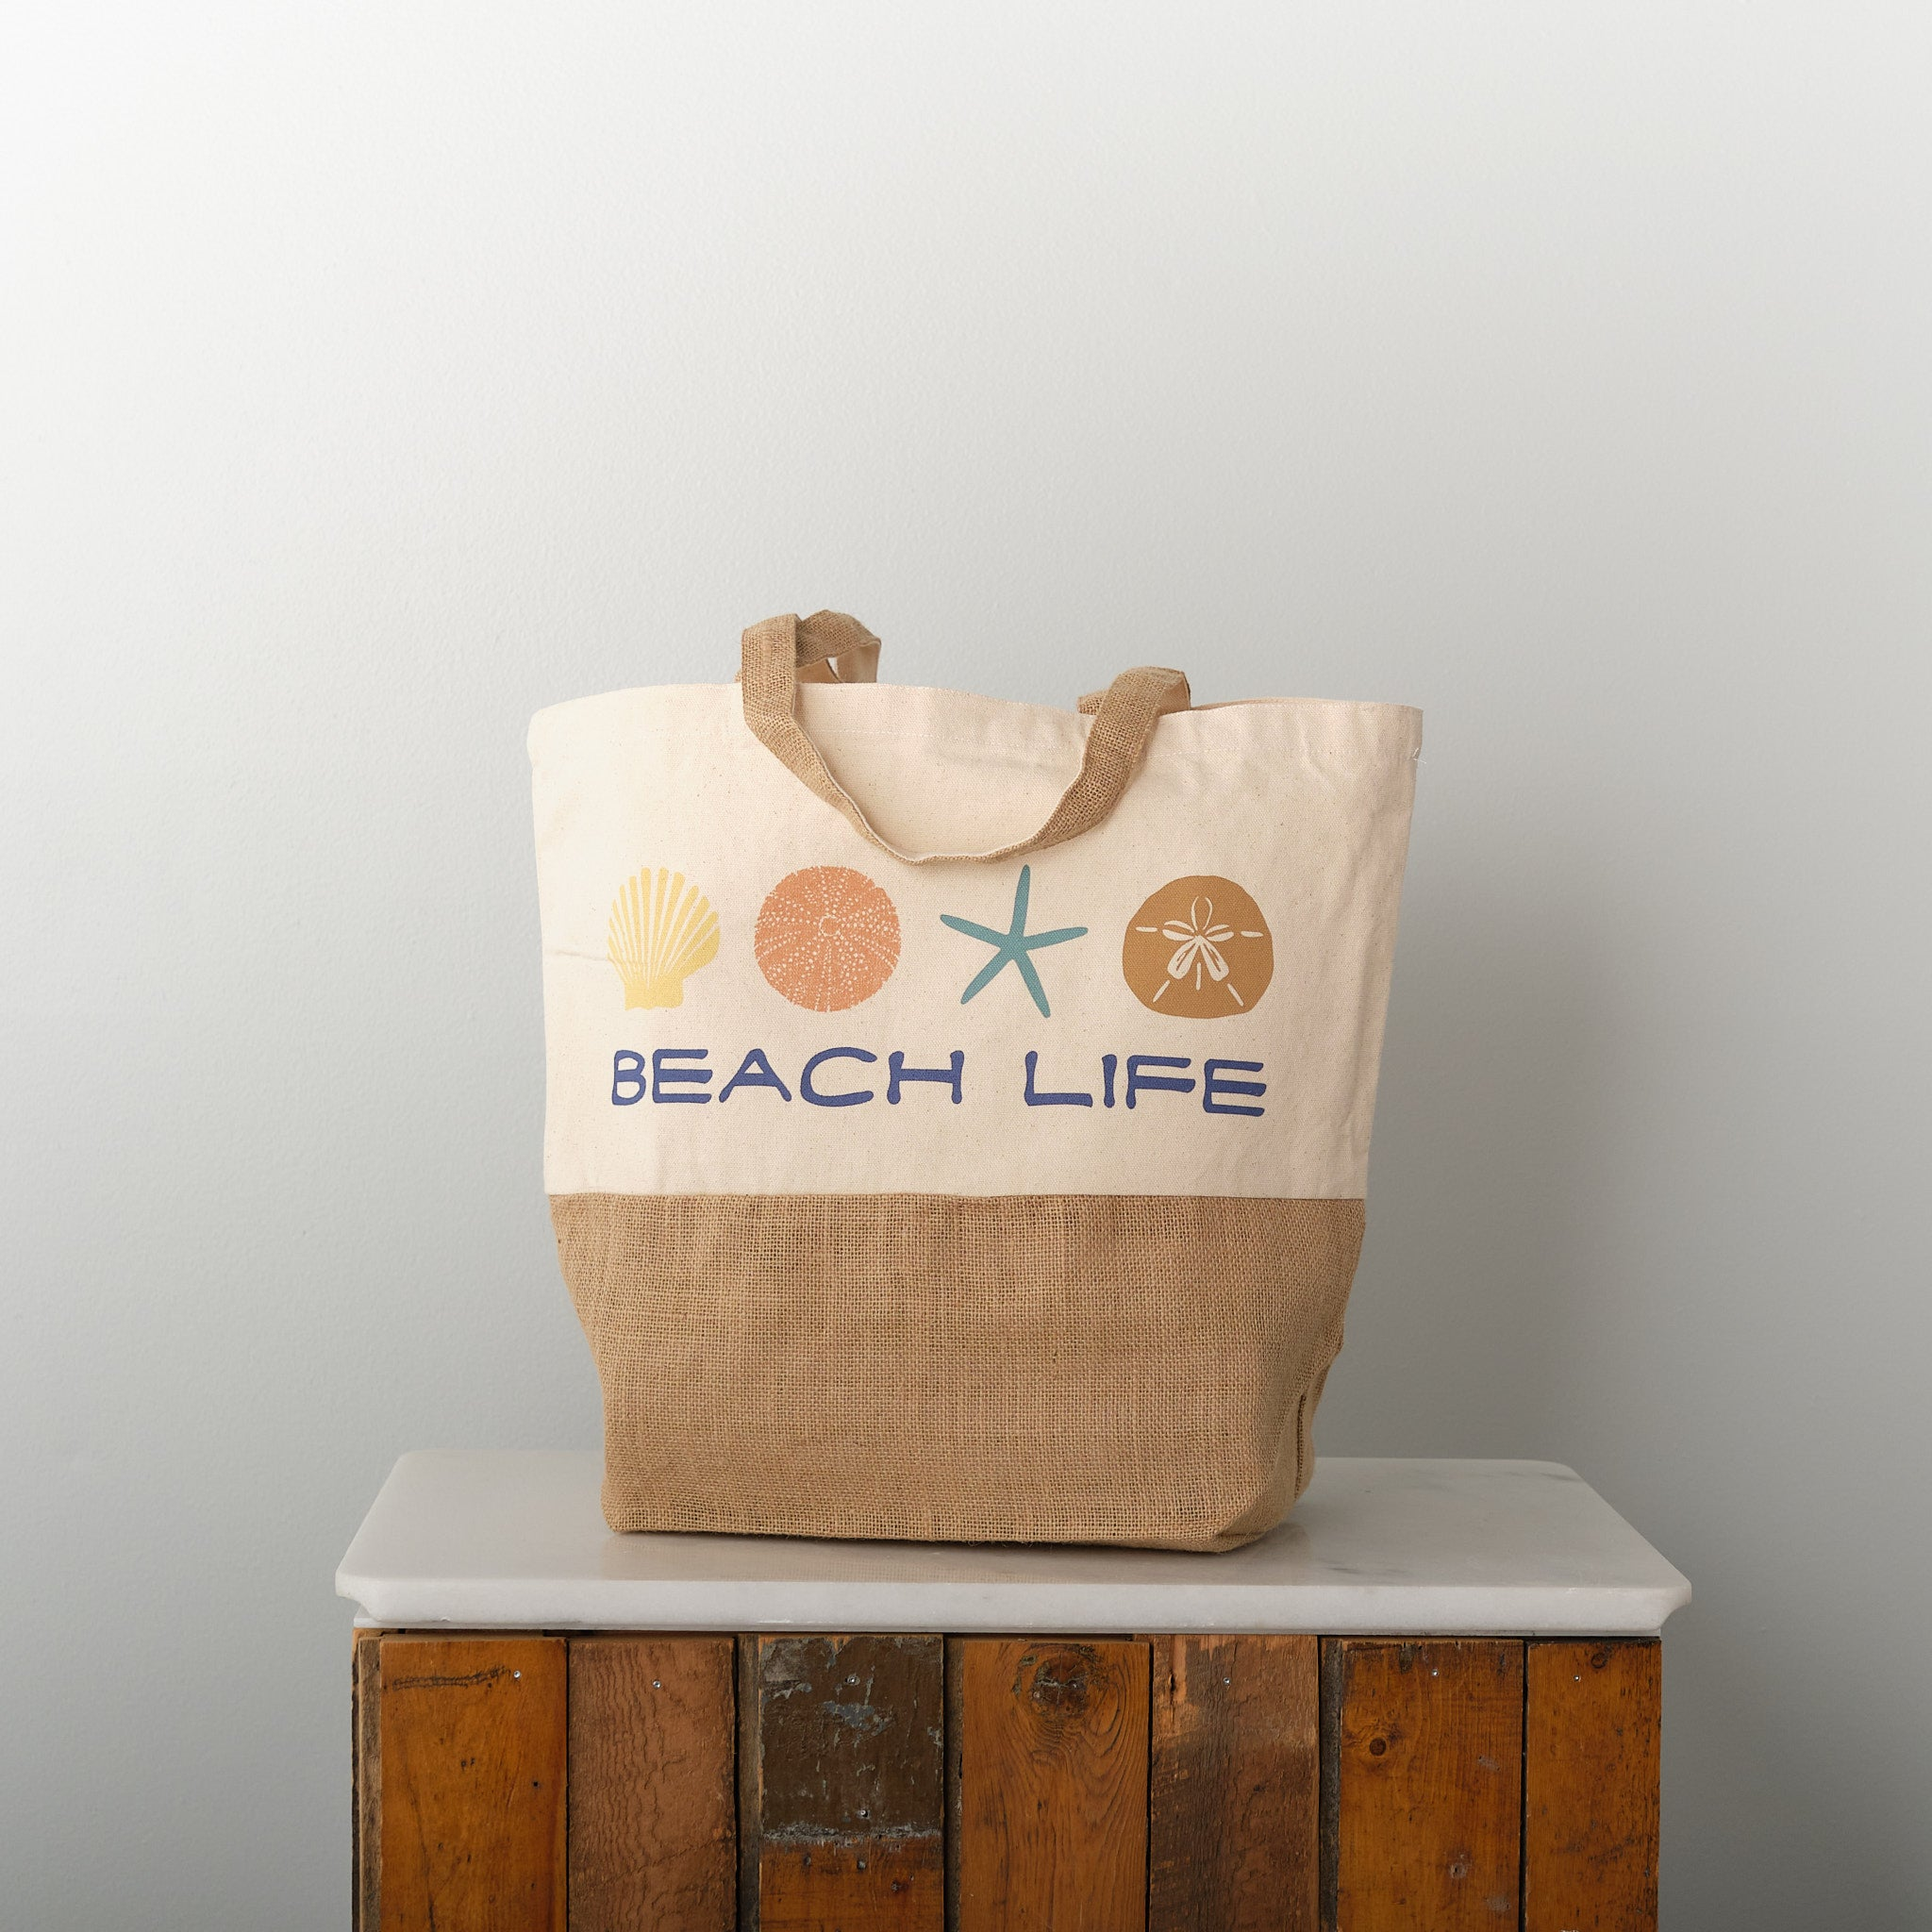 Beach Life, recycled cotton and jute beach tote bag